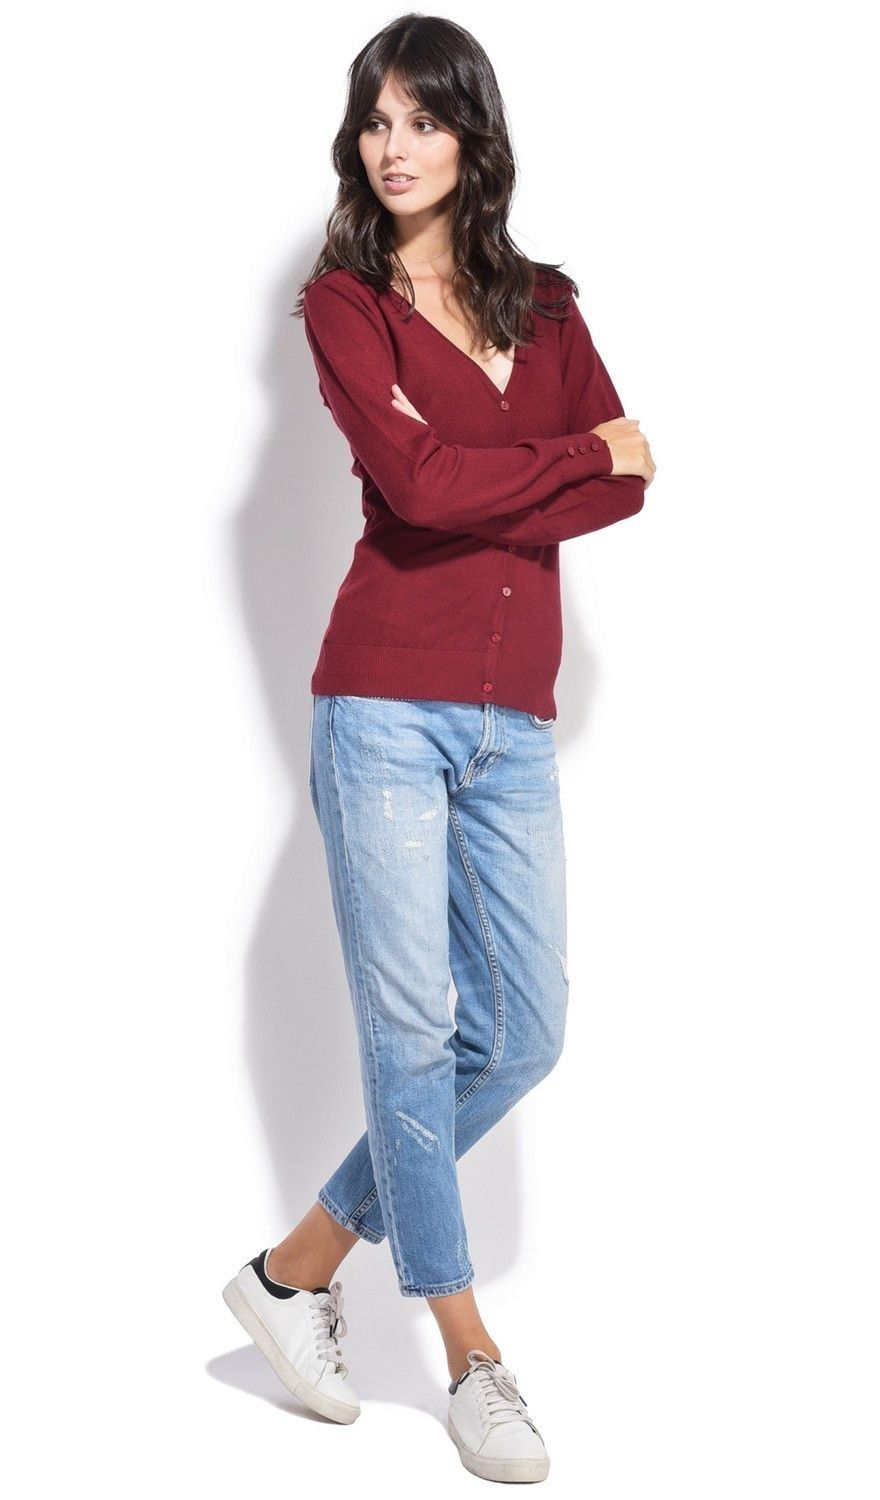 C&JO V-neck Cardigan with Buttoned Sleeves in Maroon